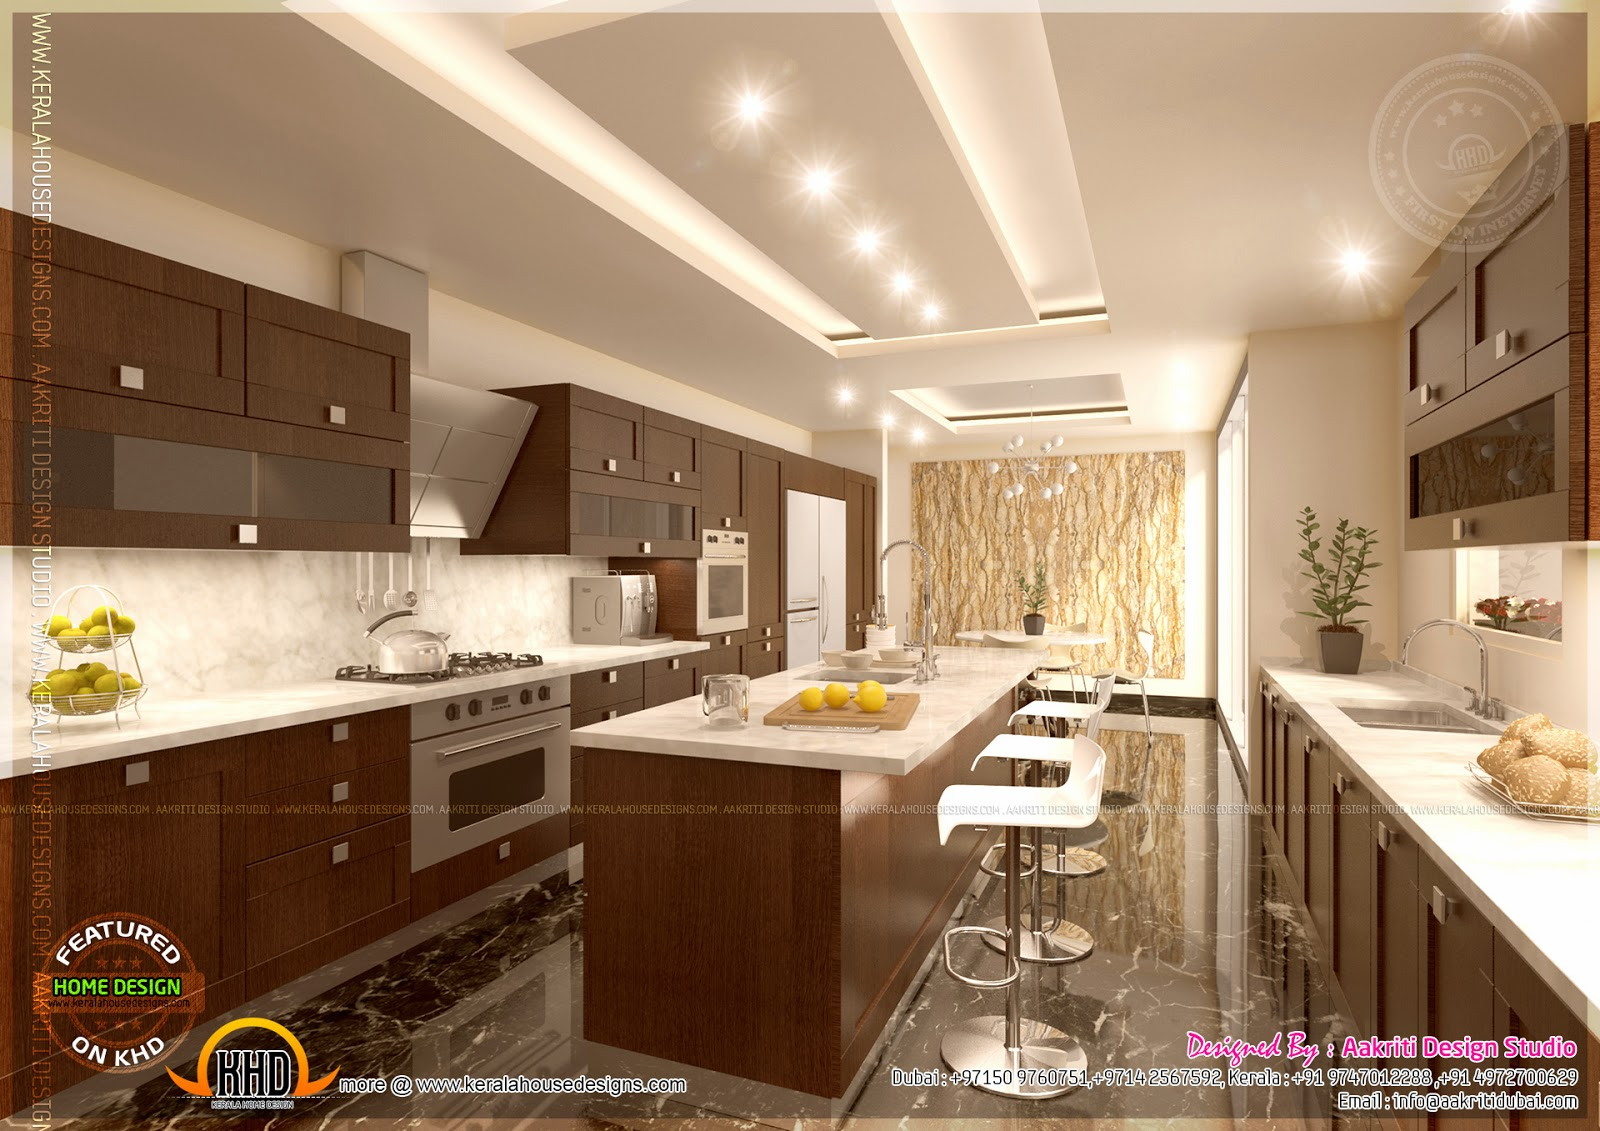 Kitchen designs by aakriti design studio kerala home for House kitchen design